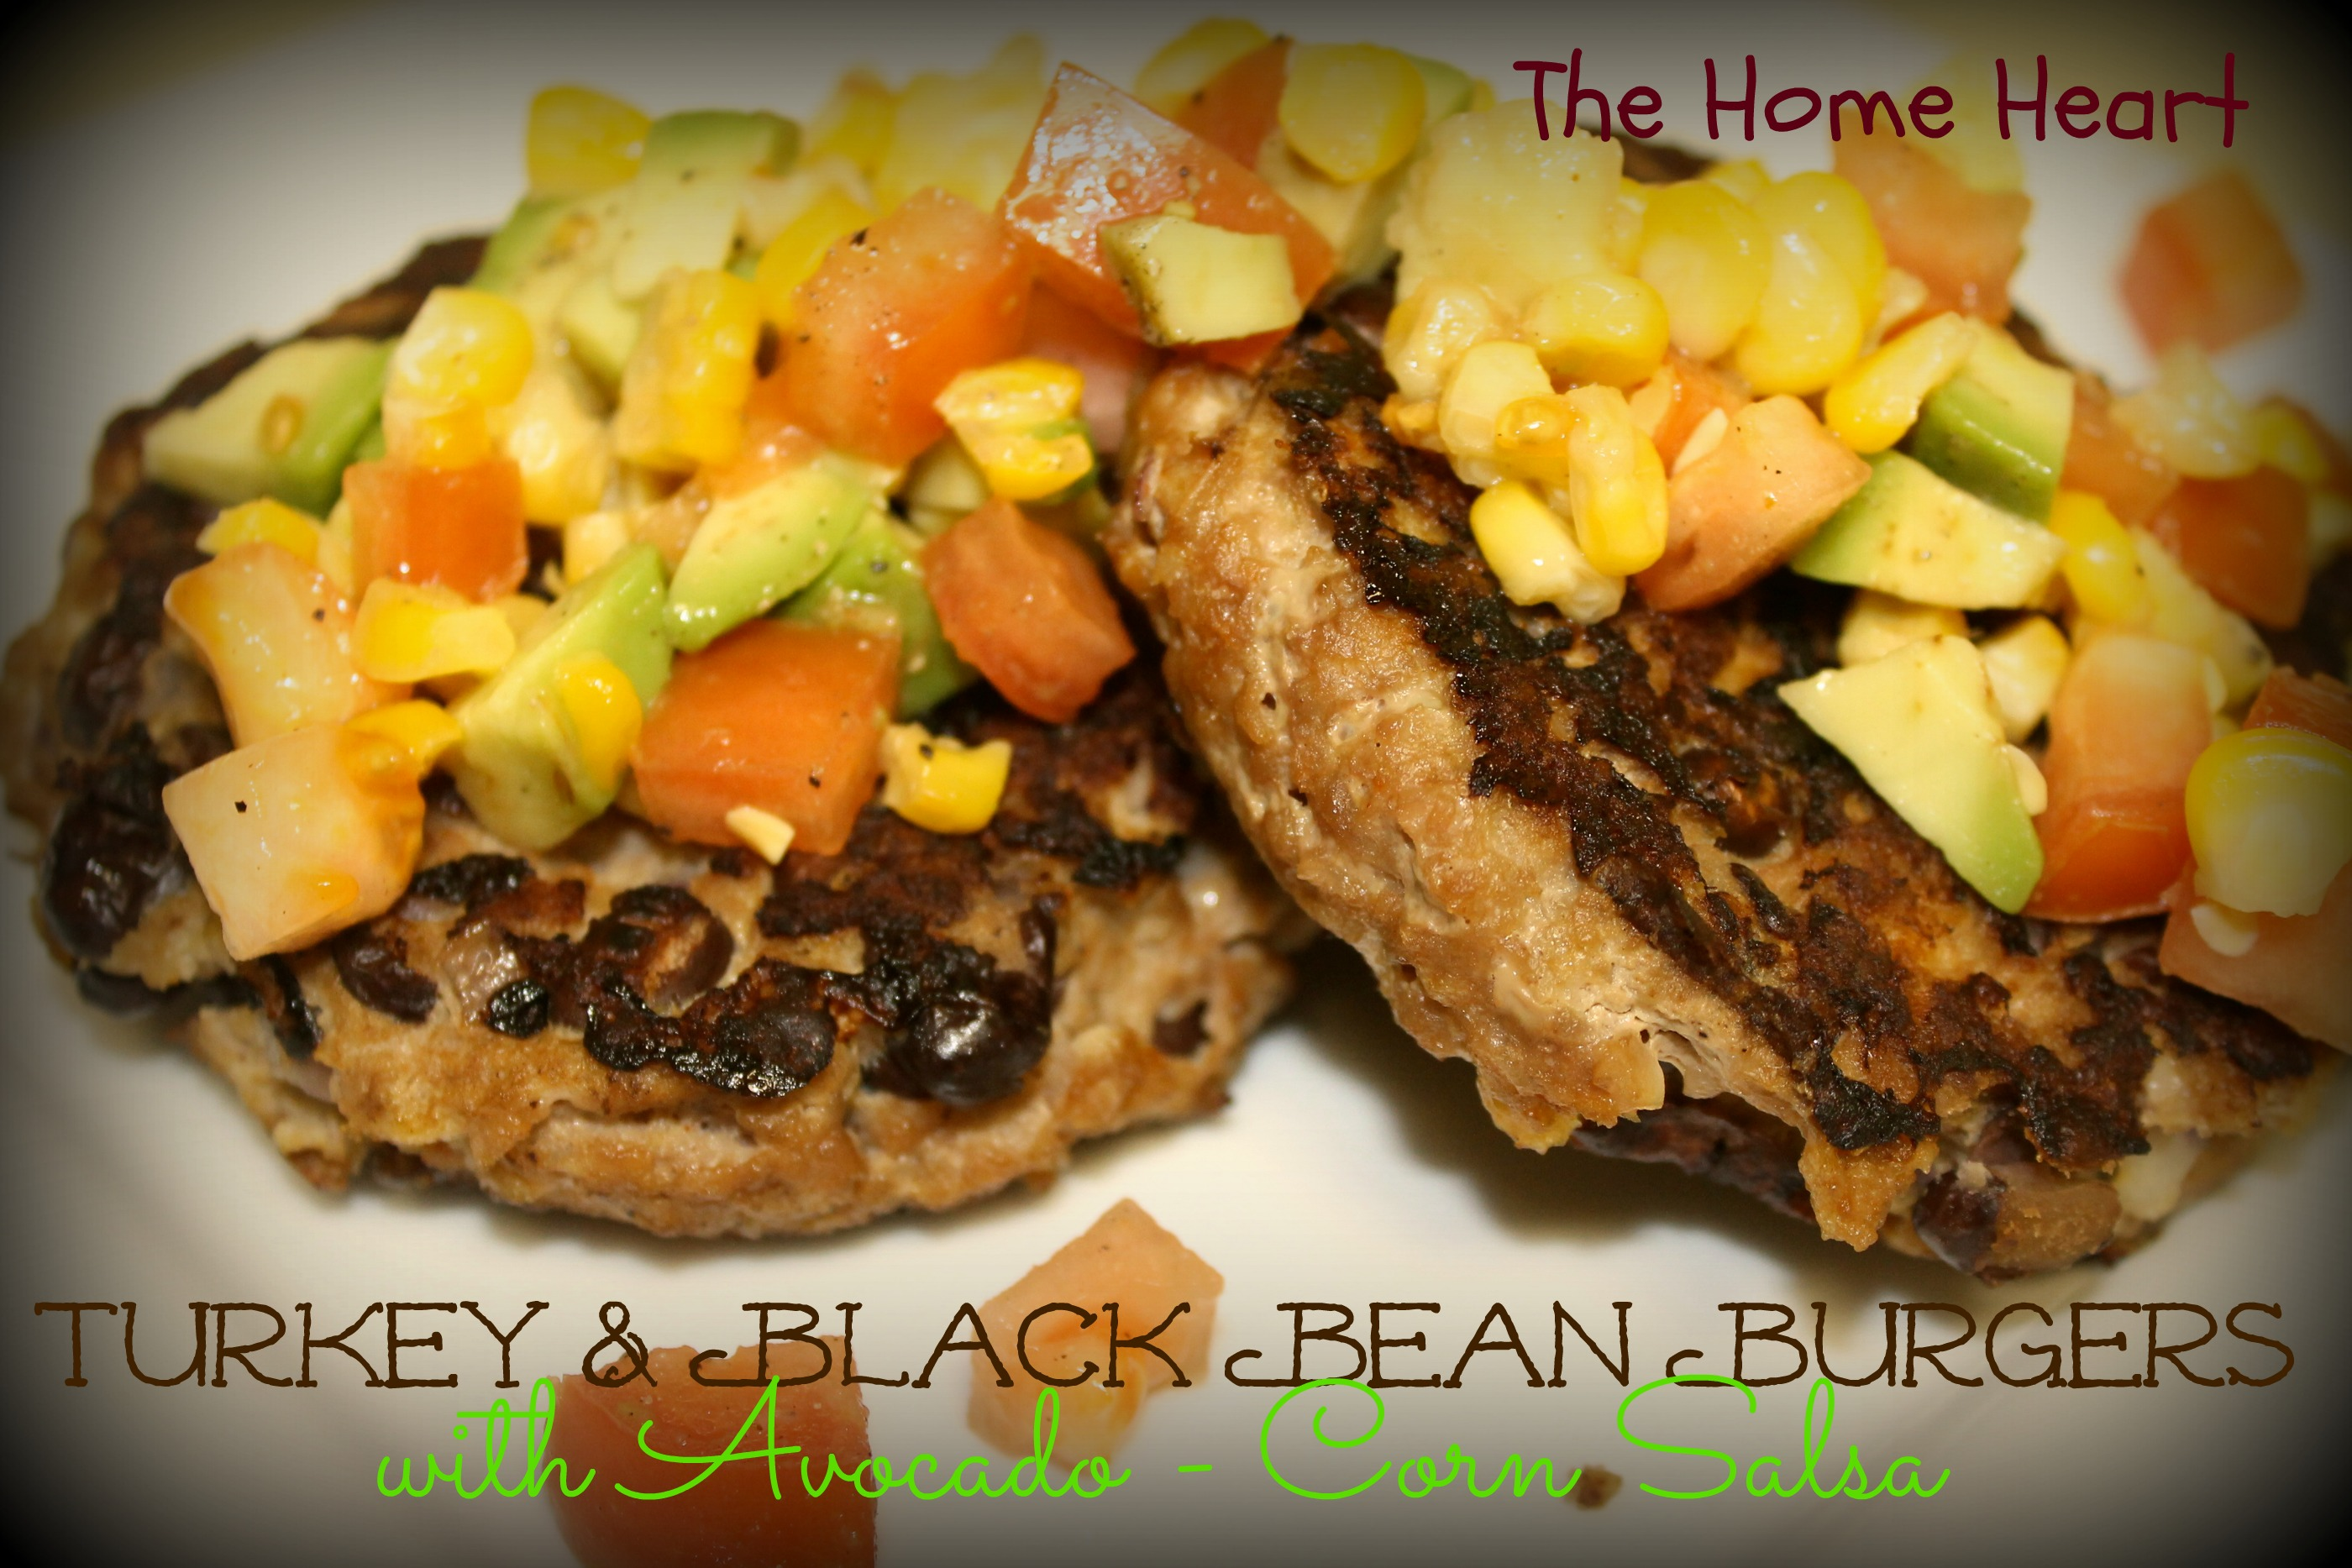 Turkey & Black Bean Burgers with Avocado-Corn Salsa | The Home Heart